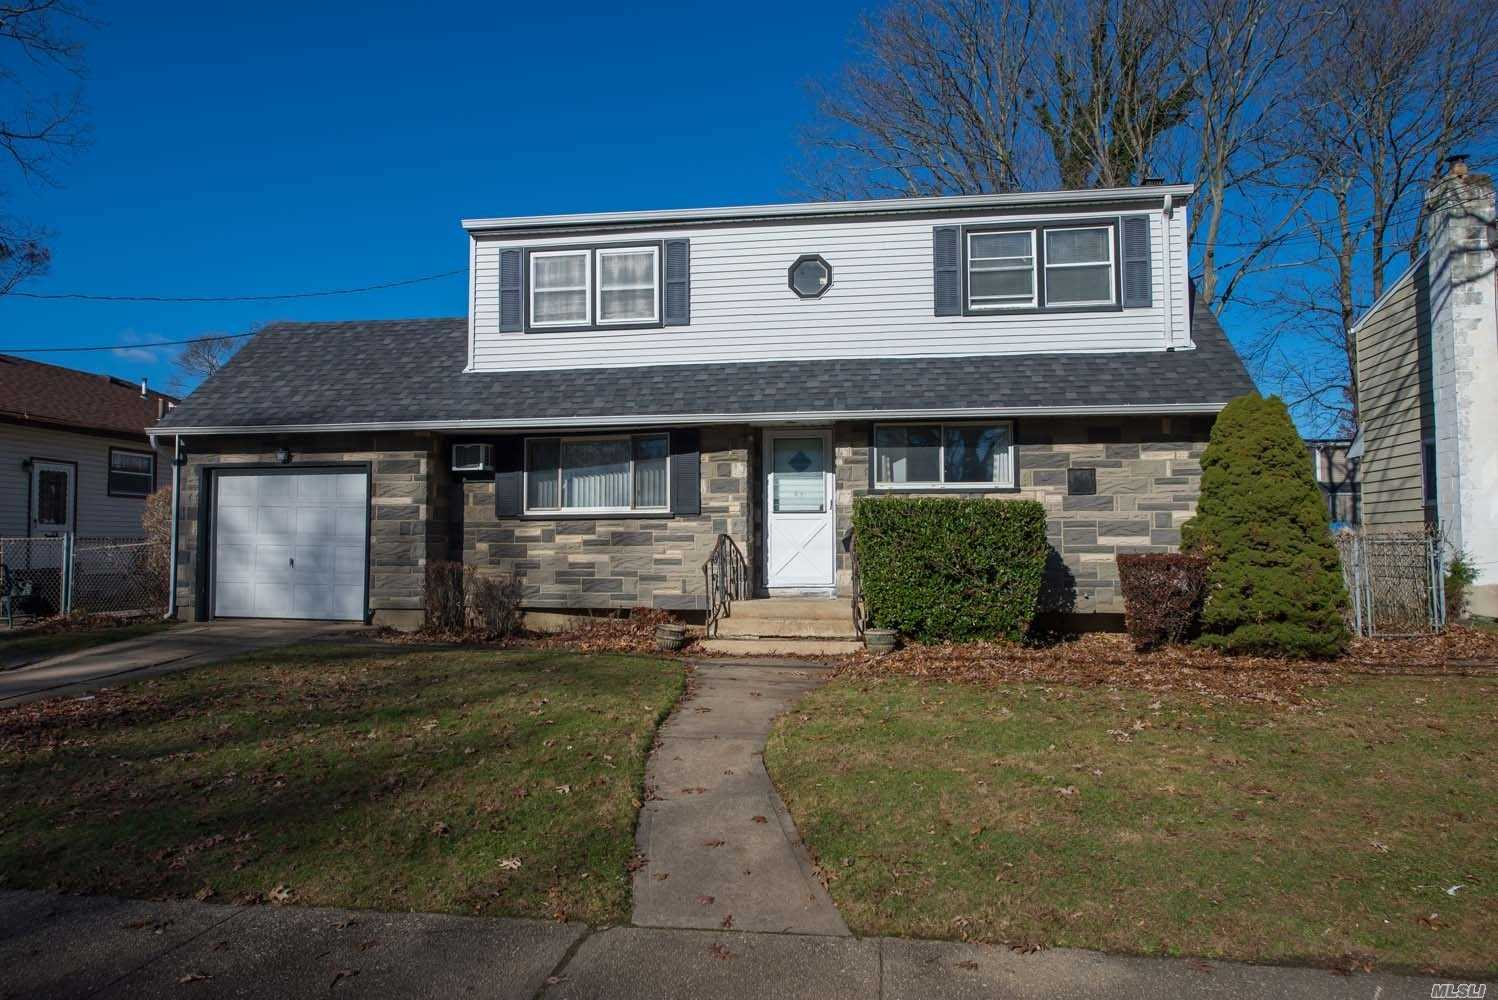 Fully Dormered And Expanded Cape Cod Home With 1800 Sq. Ft. Of Living Space Featuring 5 Bedrooms And 2 Full Baths In The Heart Of Massapequa Park! Kitchen And Baths Have Been Updated! Den With Sliders To Yard! New Oil Burner And Tank! 8 Yr Old Roof And Updated Electric!Location Is Everything In This Diamond In The Rough Home!Birch Lane School!Apply Your Own Taste & Move In!Taxes W/Star Under $10K!Sold-As-Is!